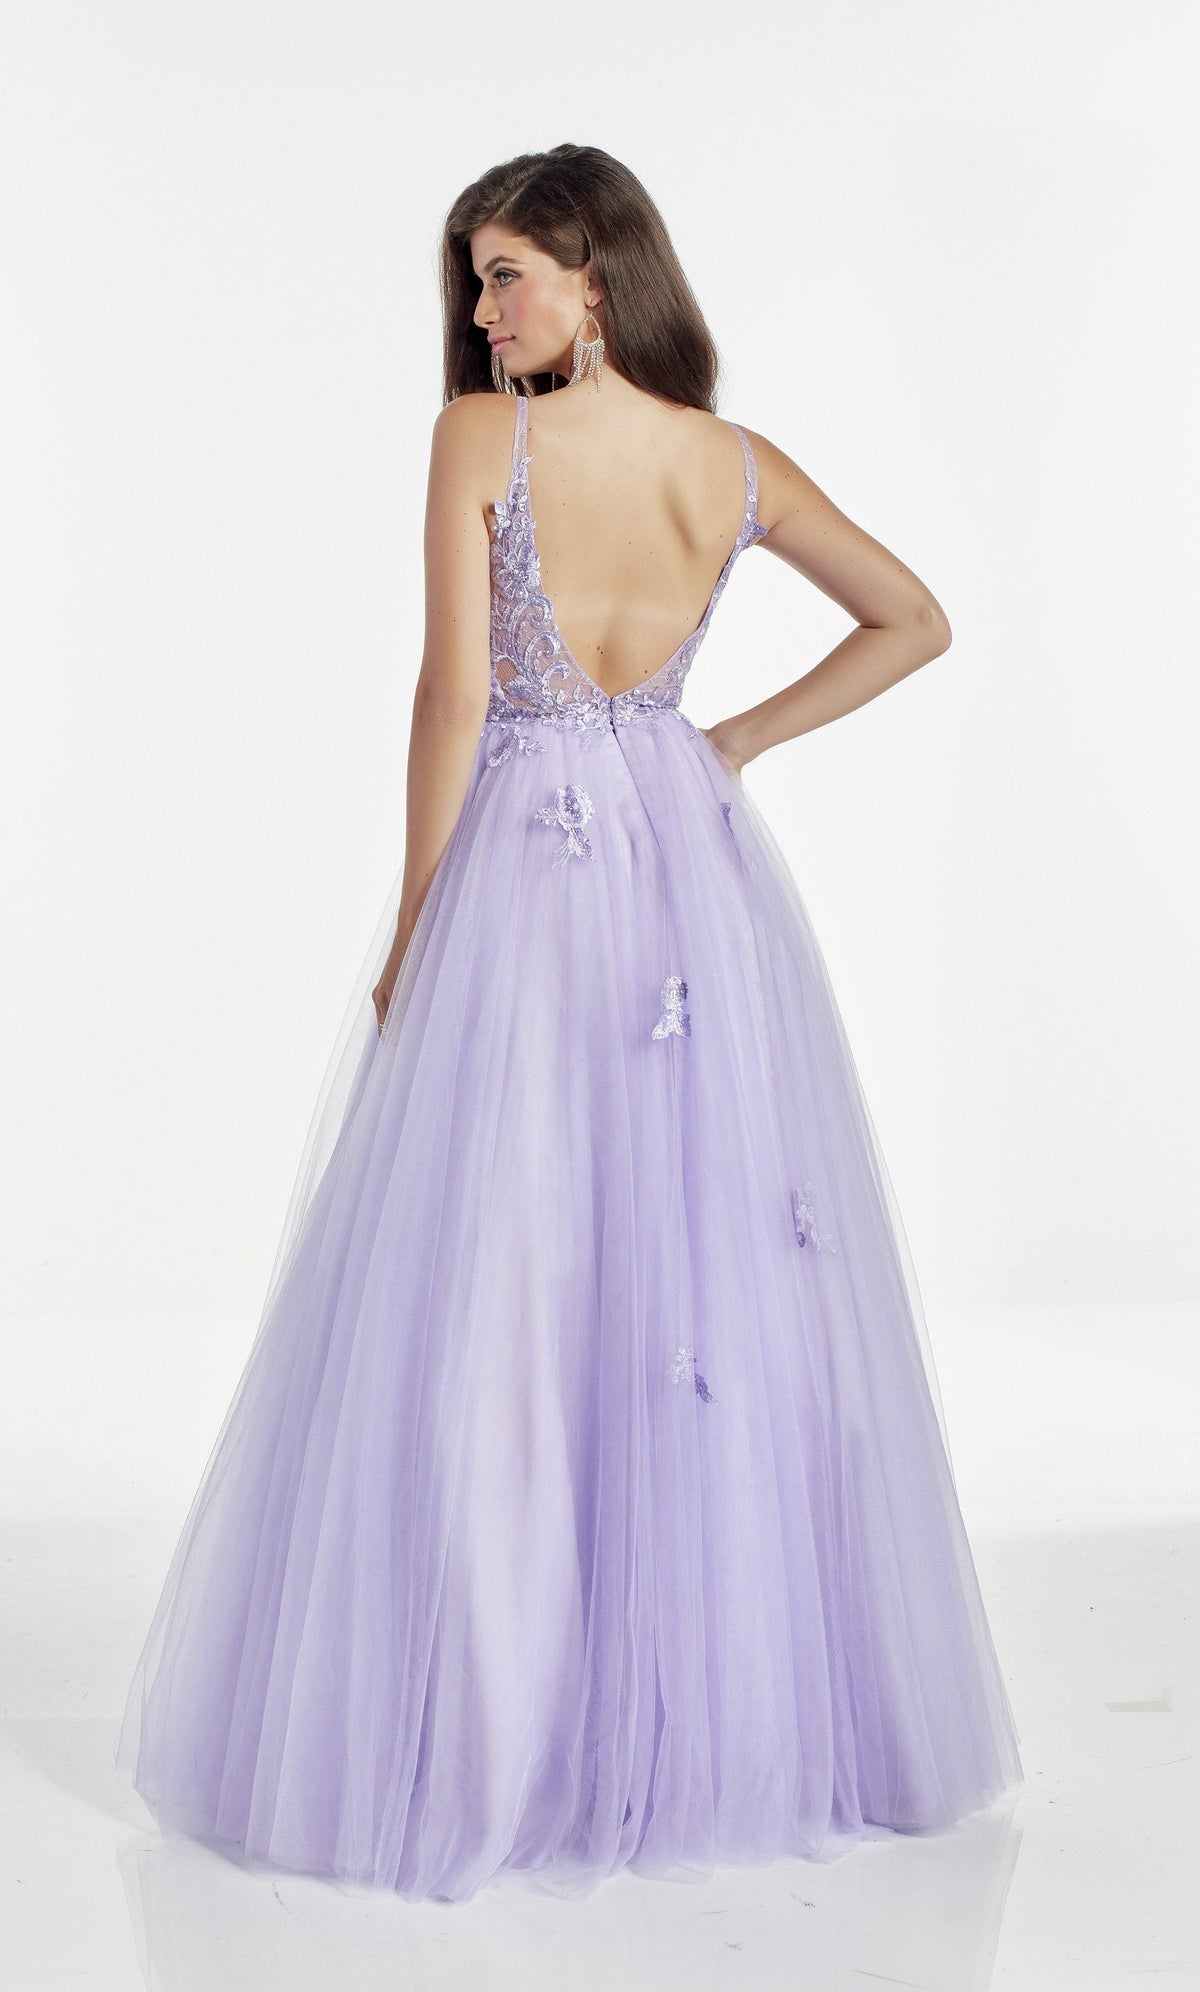 Blue Iris A line tulle prom dress with a V shaped back style and delicate embroidery on the sheer bodice and skirt